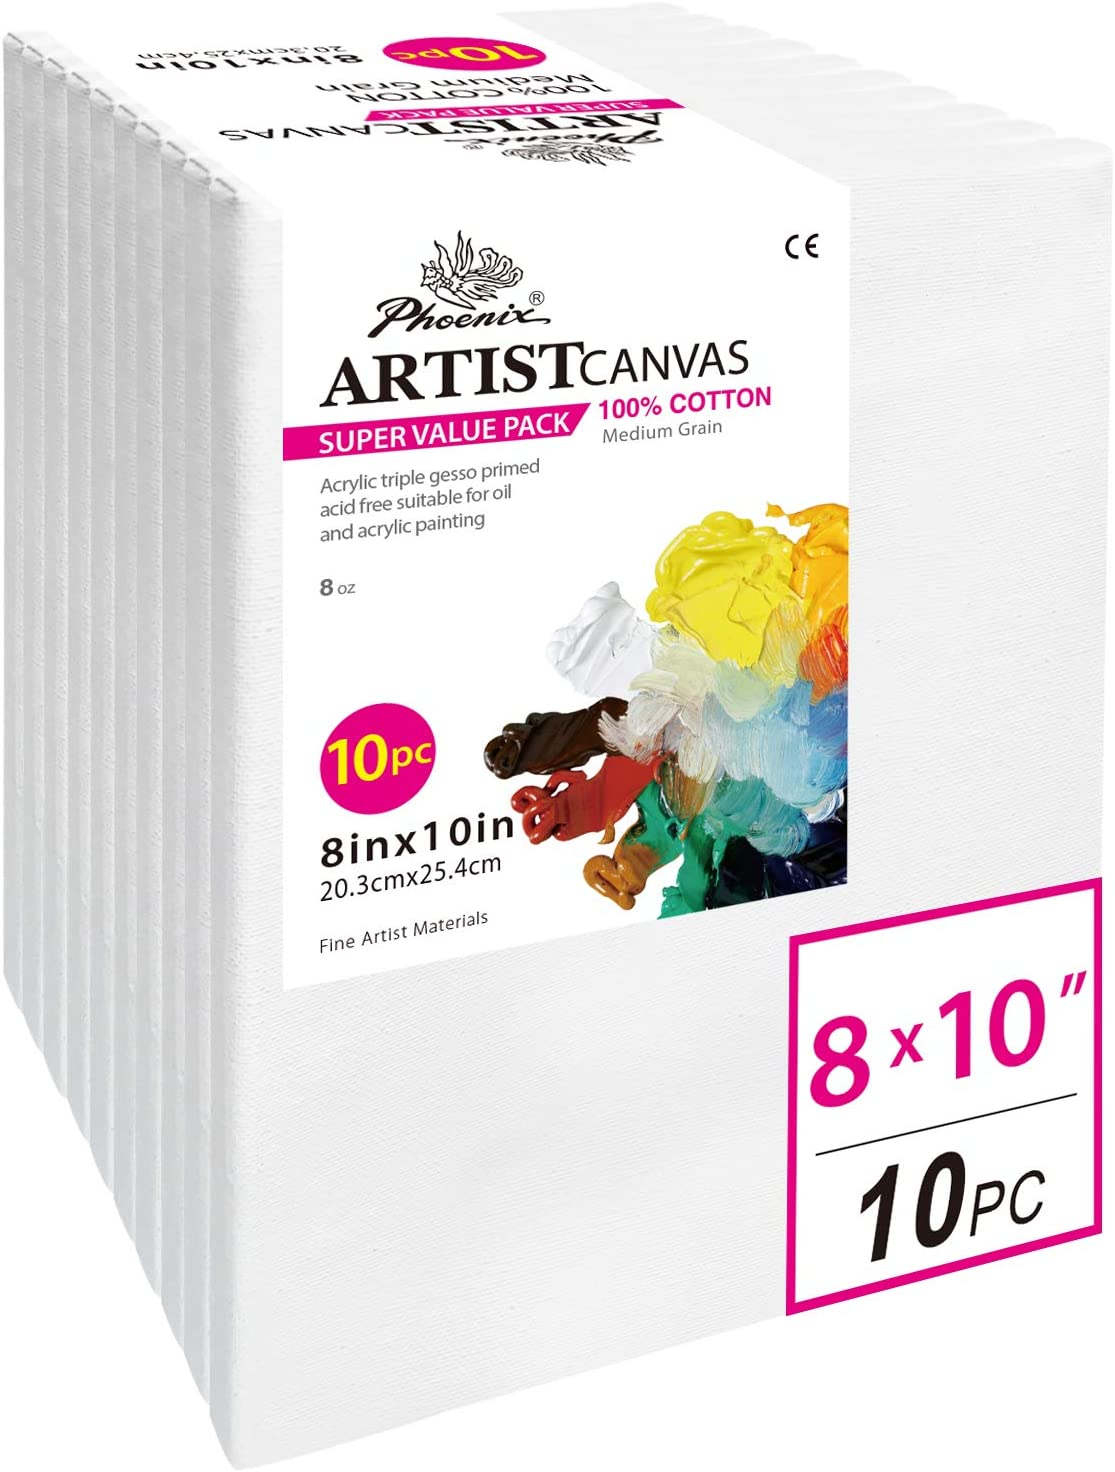 PHOENIX Pre Stretched Canvas for Painting - 8x10 Inch / 10 Pack - 5/8 Inch Profile of Super Value Pack for Oil & Acrylic Paint